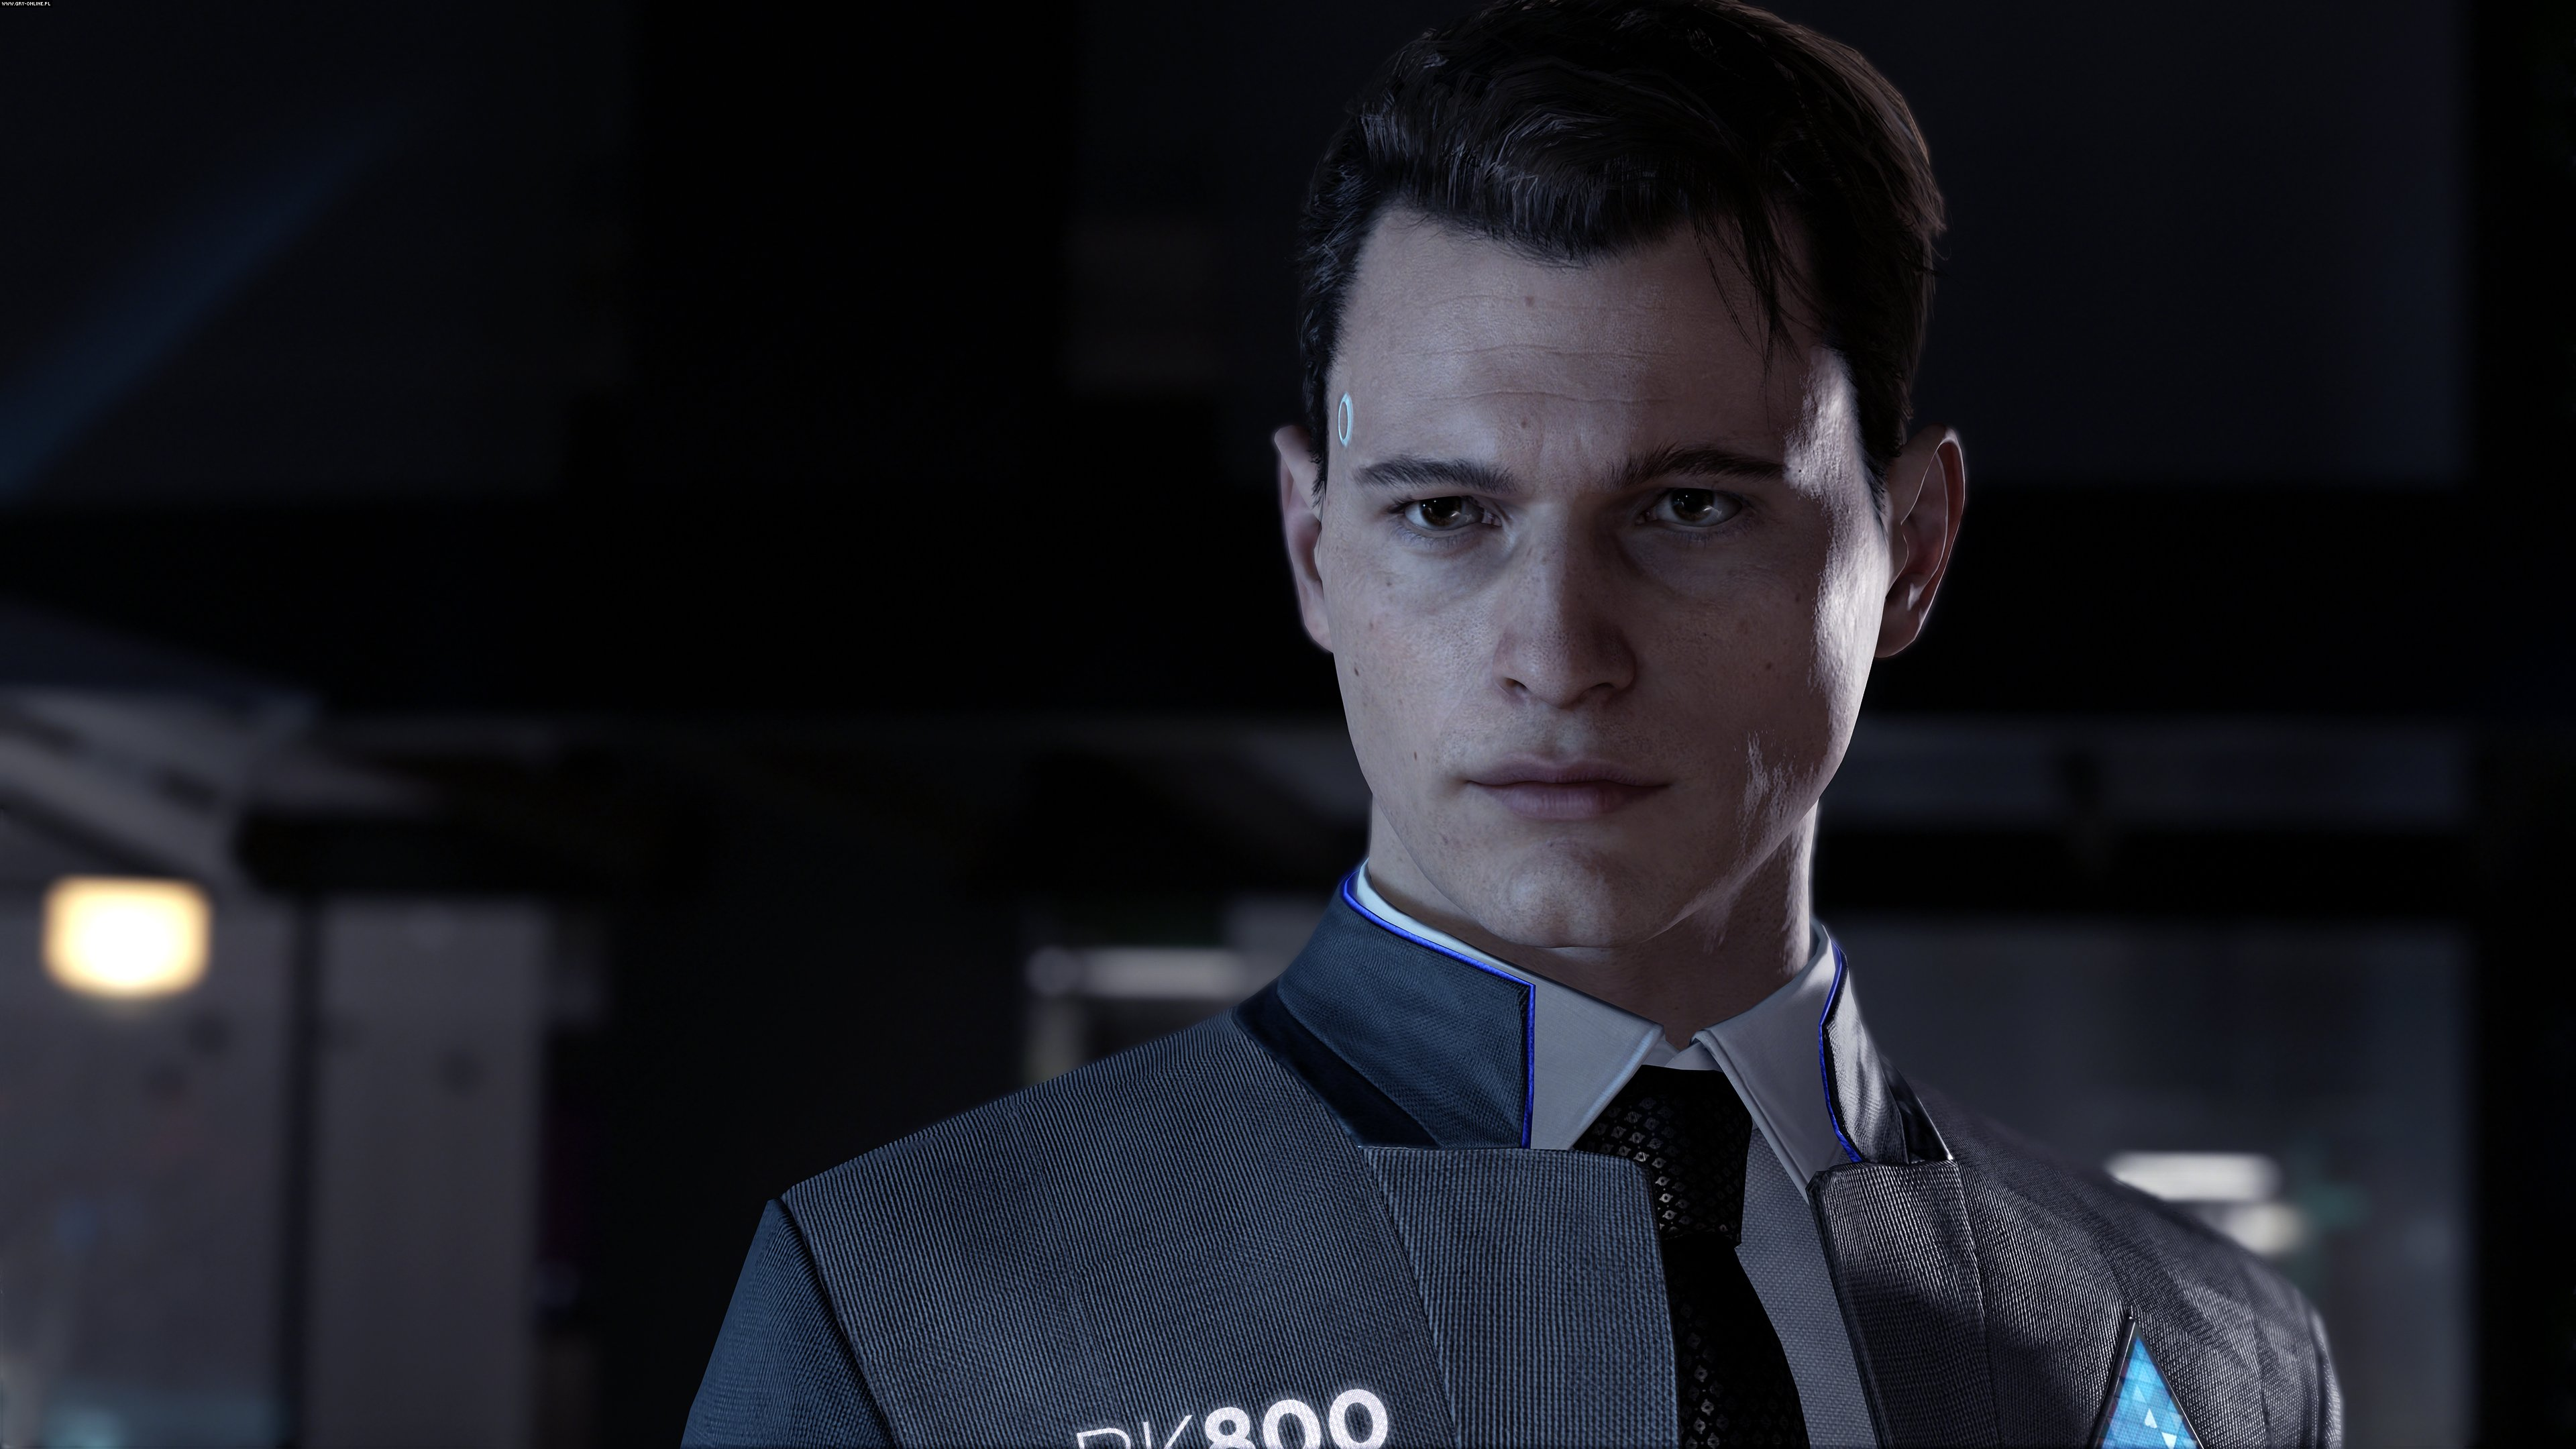 Detroit Become Human 4k Ultra Hd Wallpaper Background Image